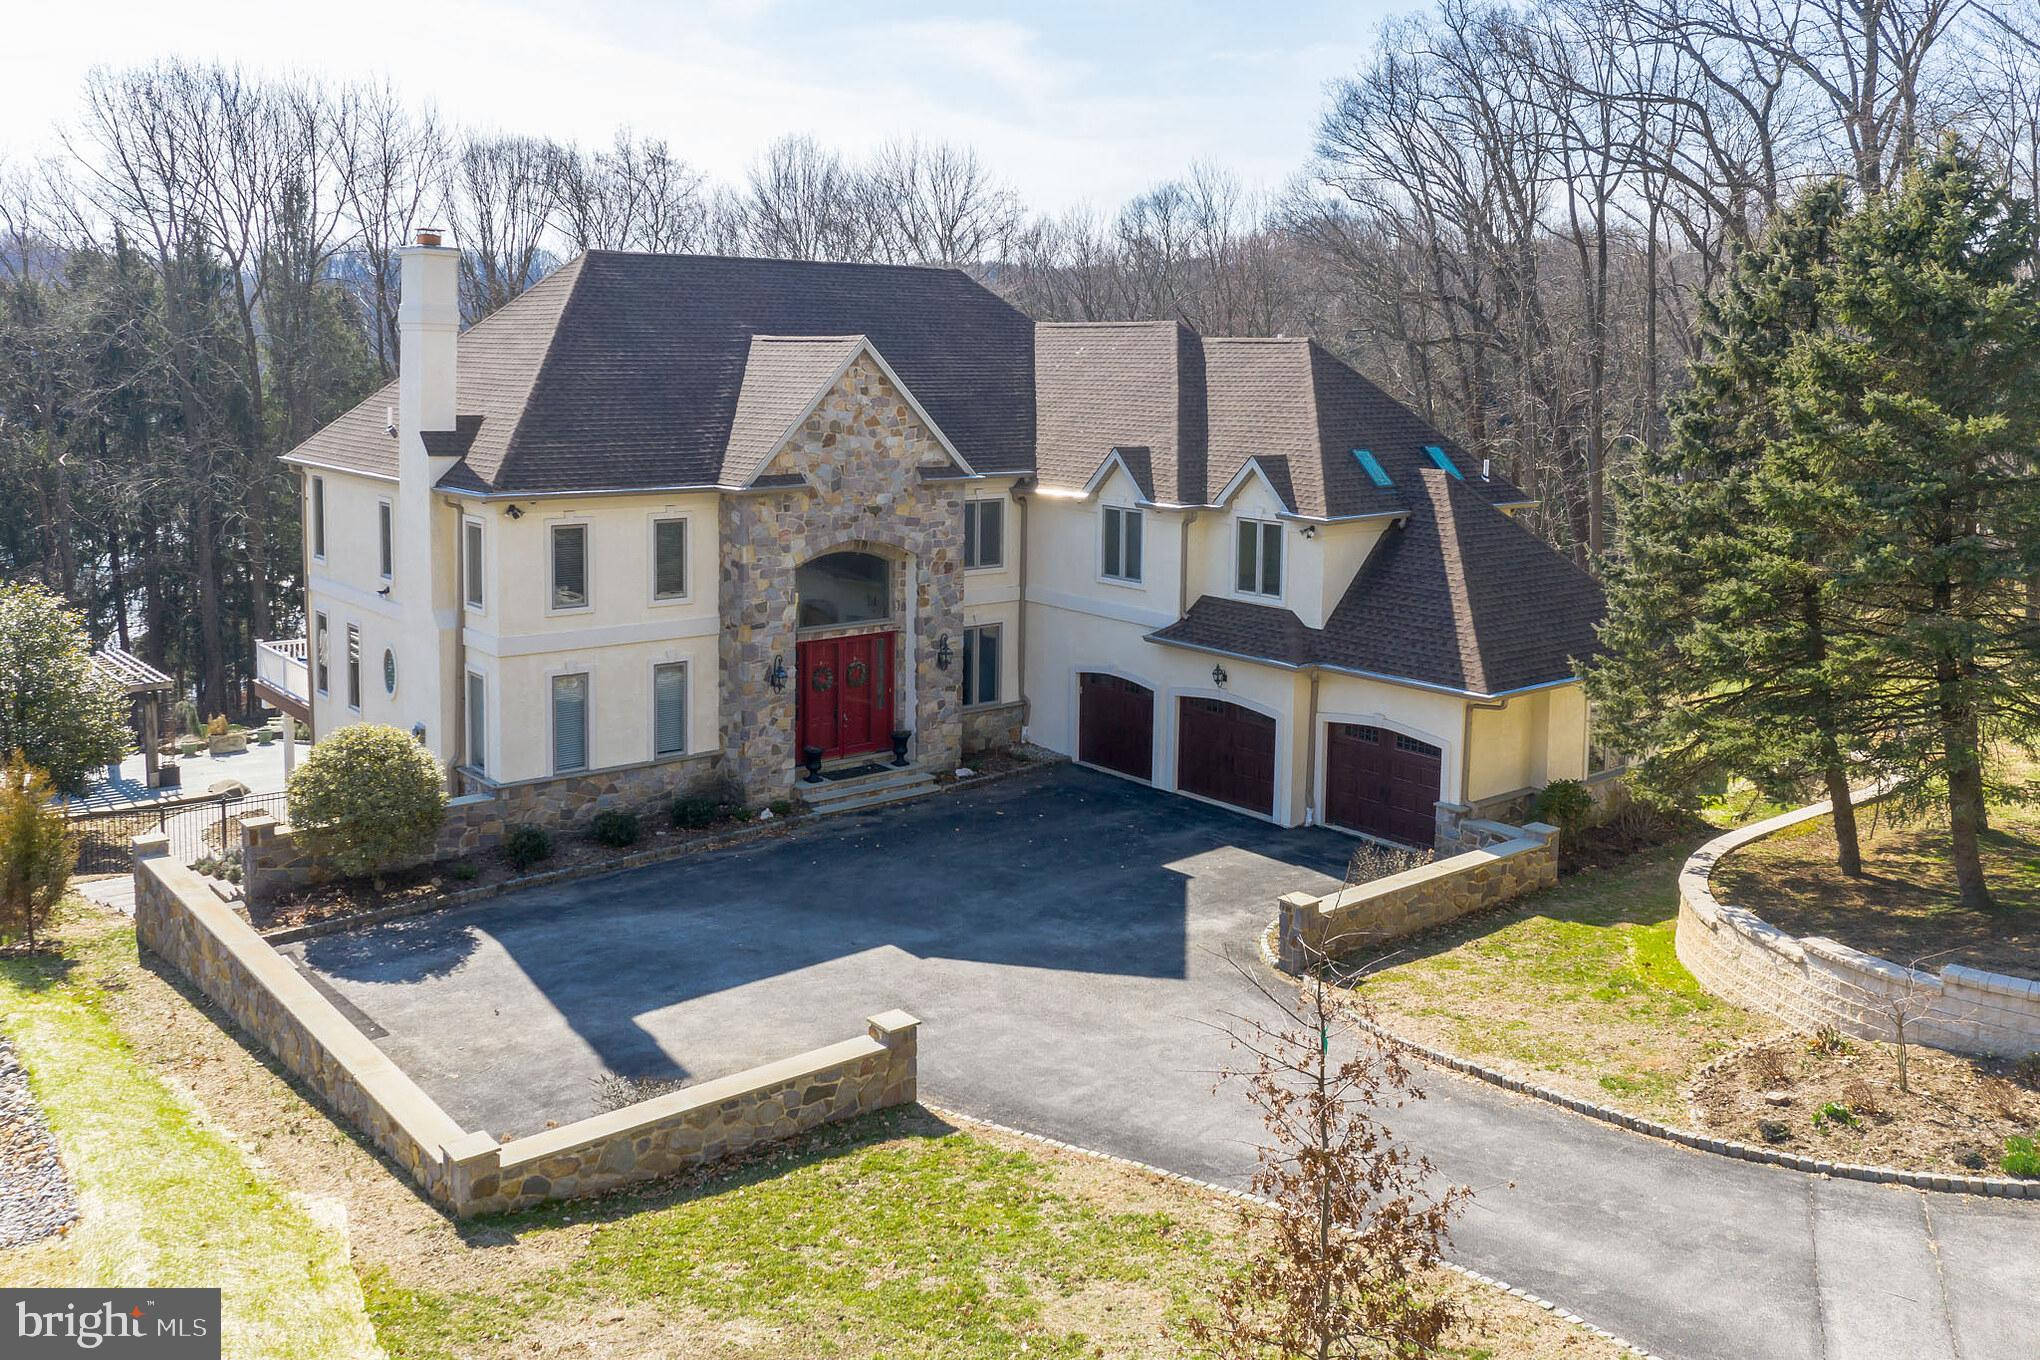 5 LLANGOLLEN LANE, NEWTOWN SQUARE, PA 19073